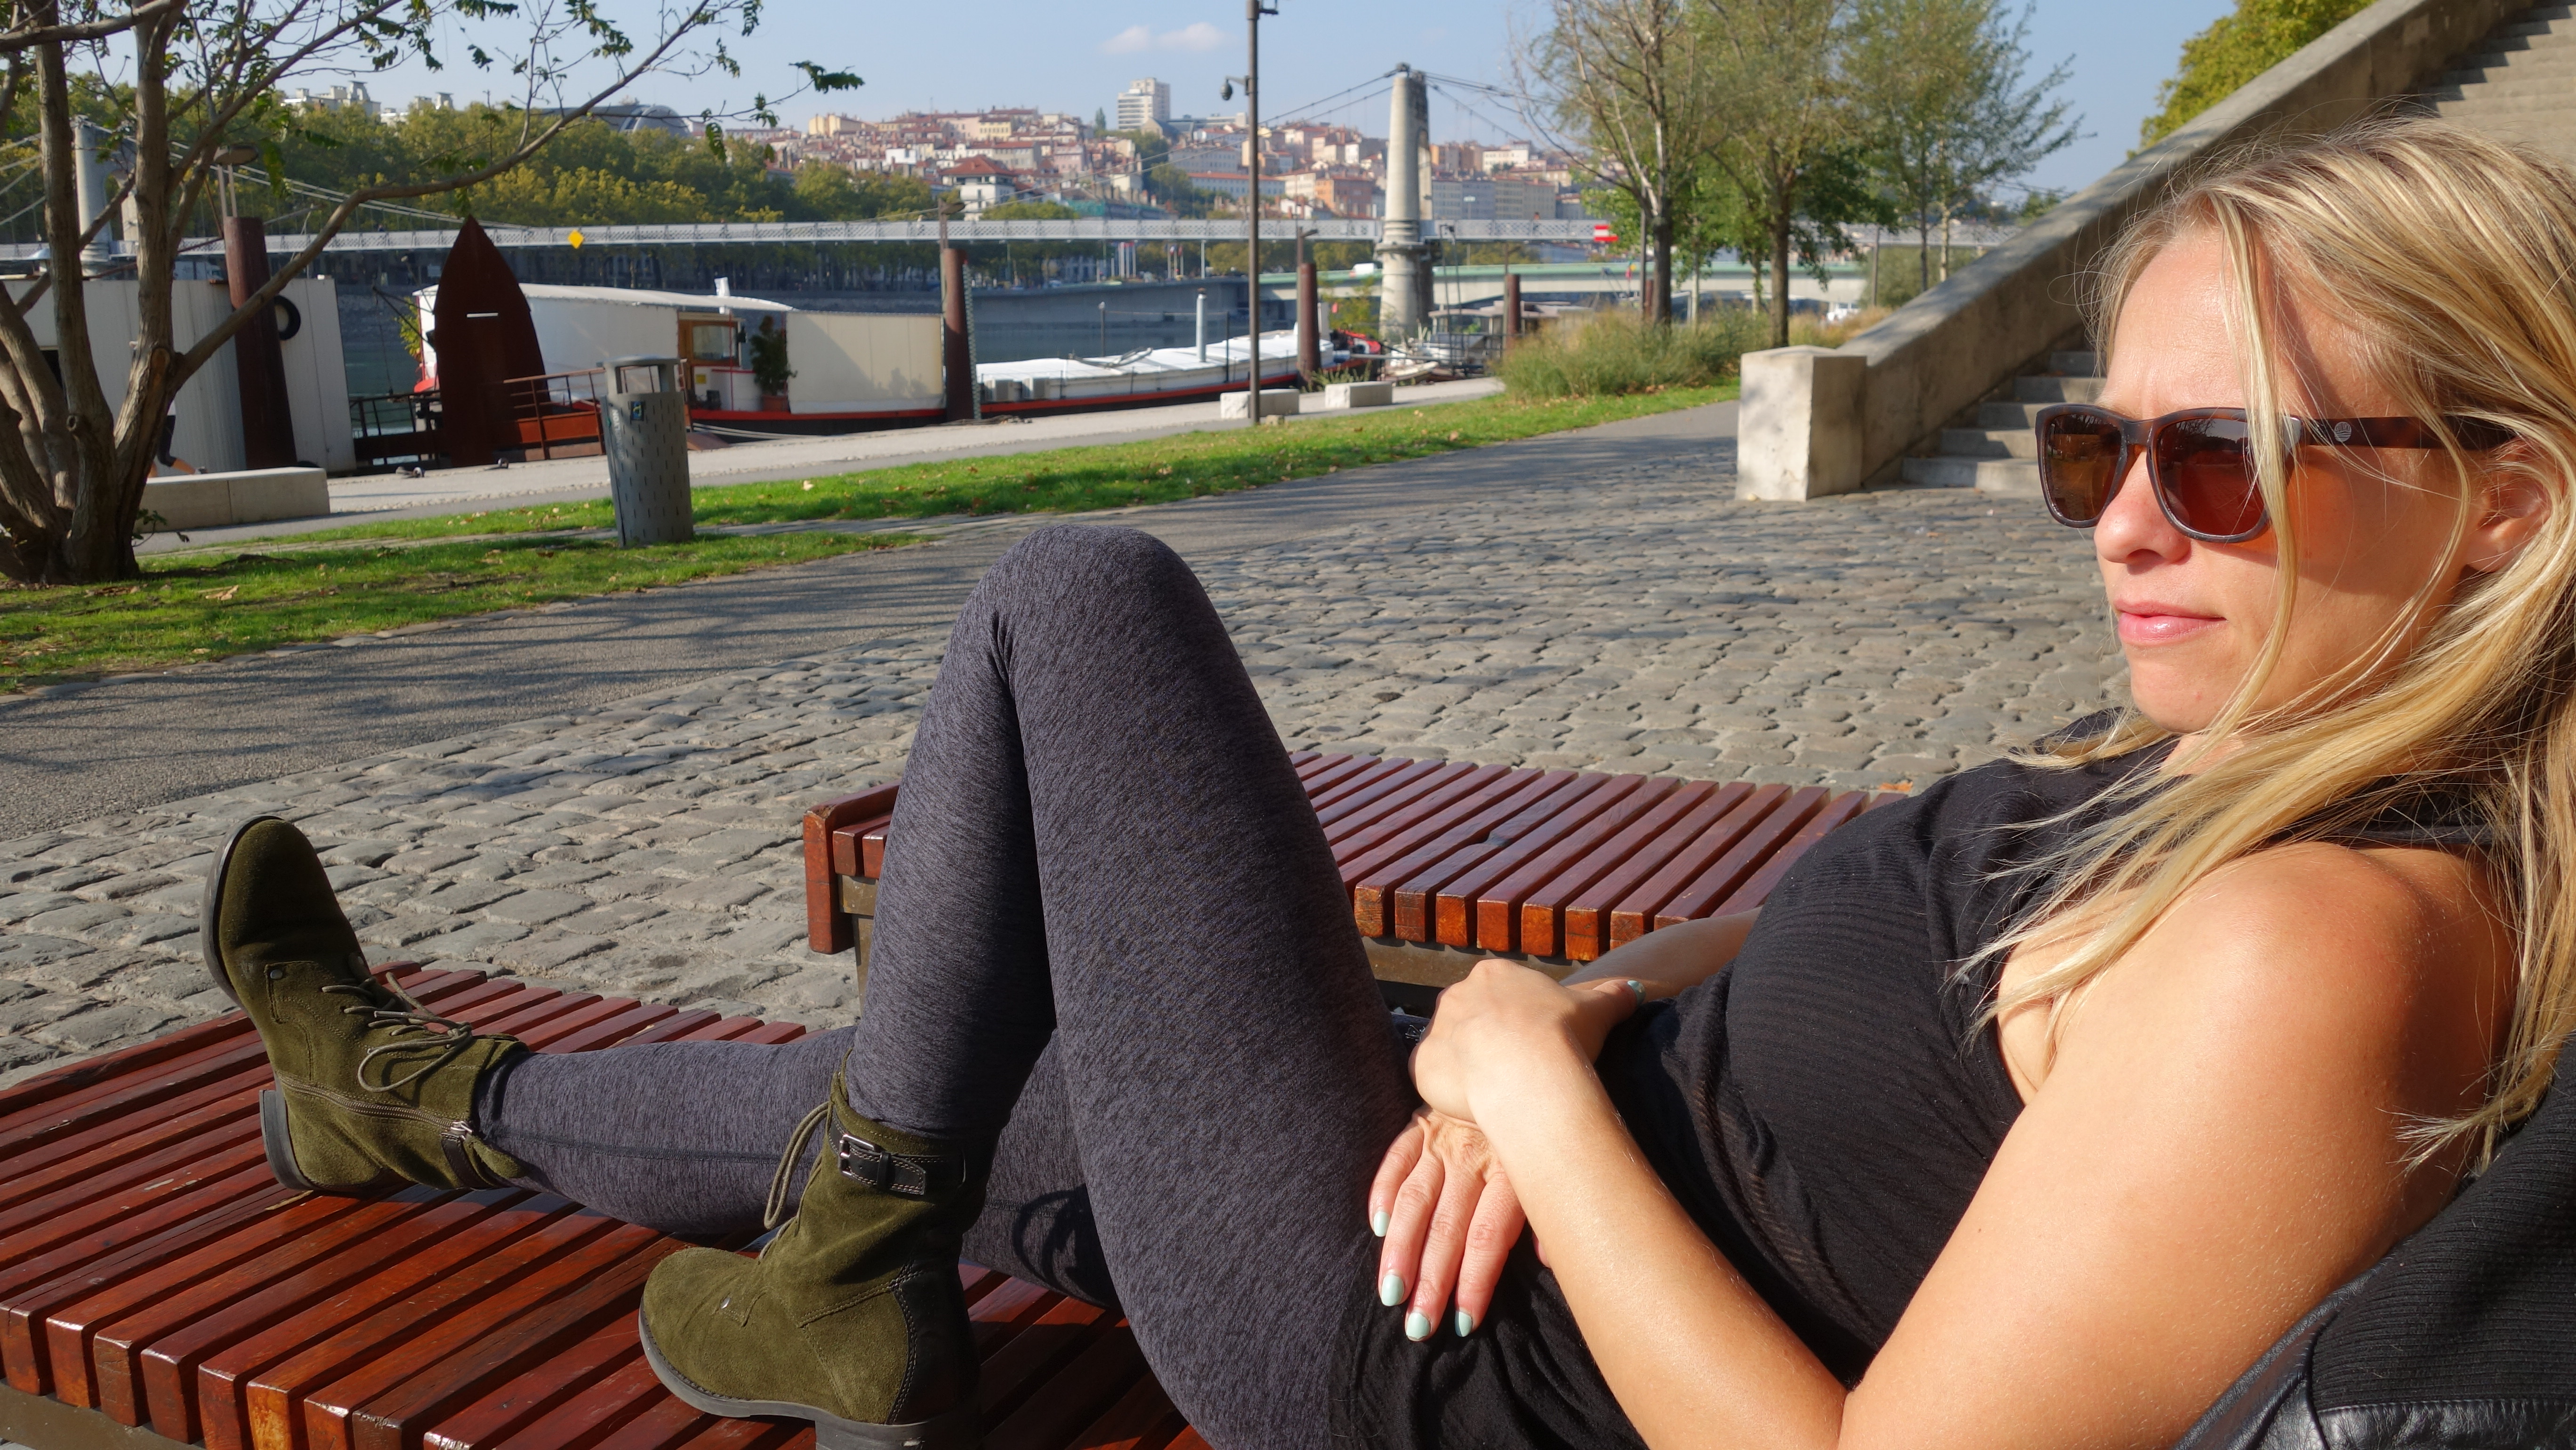 Chilling by the Saone River after a filling, deliciously fatty lunch.